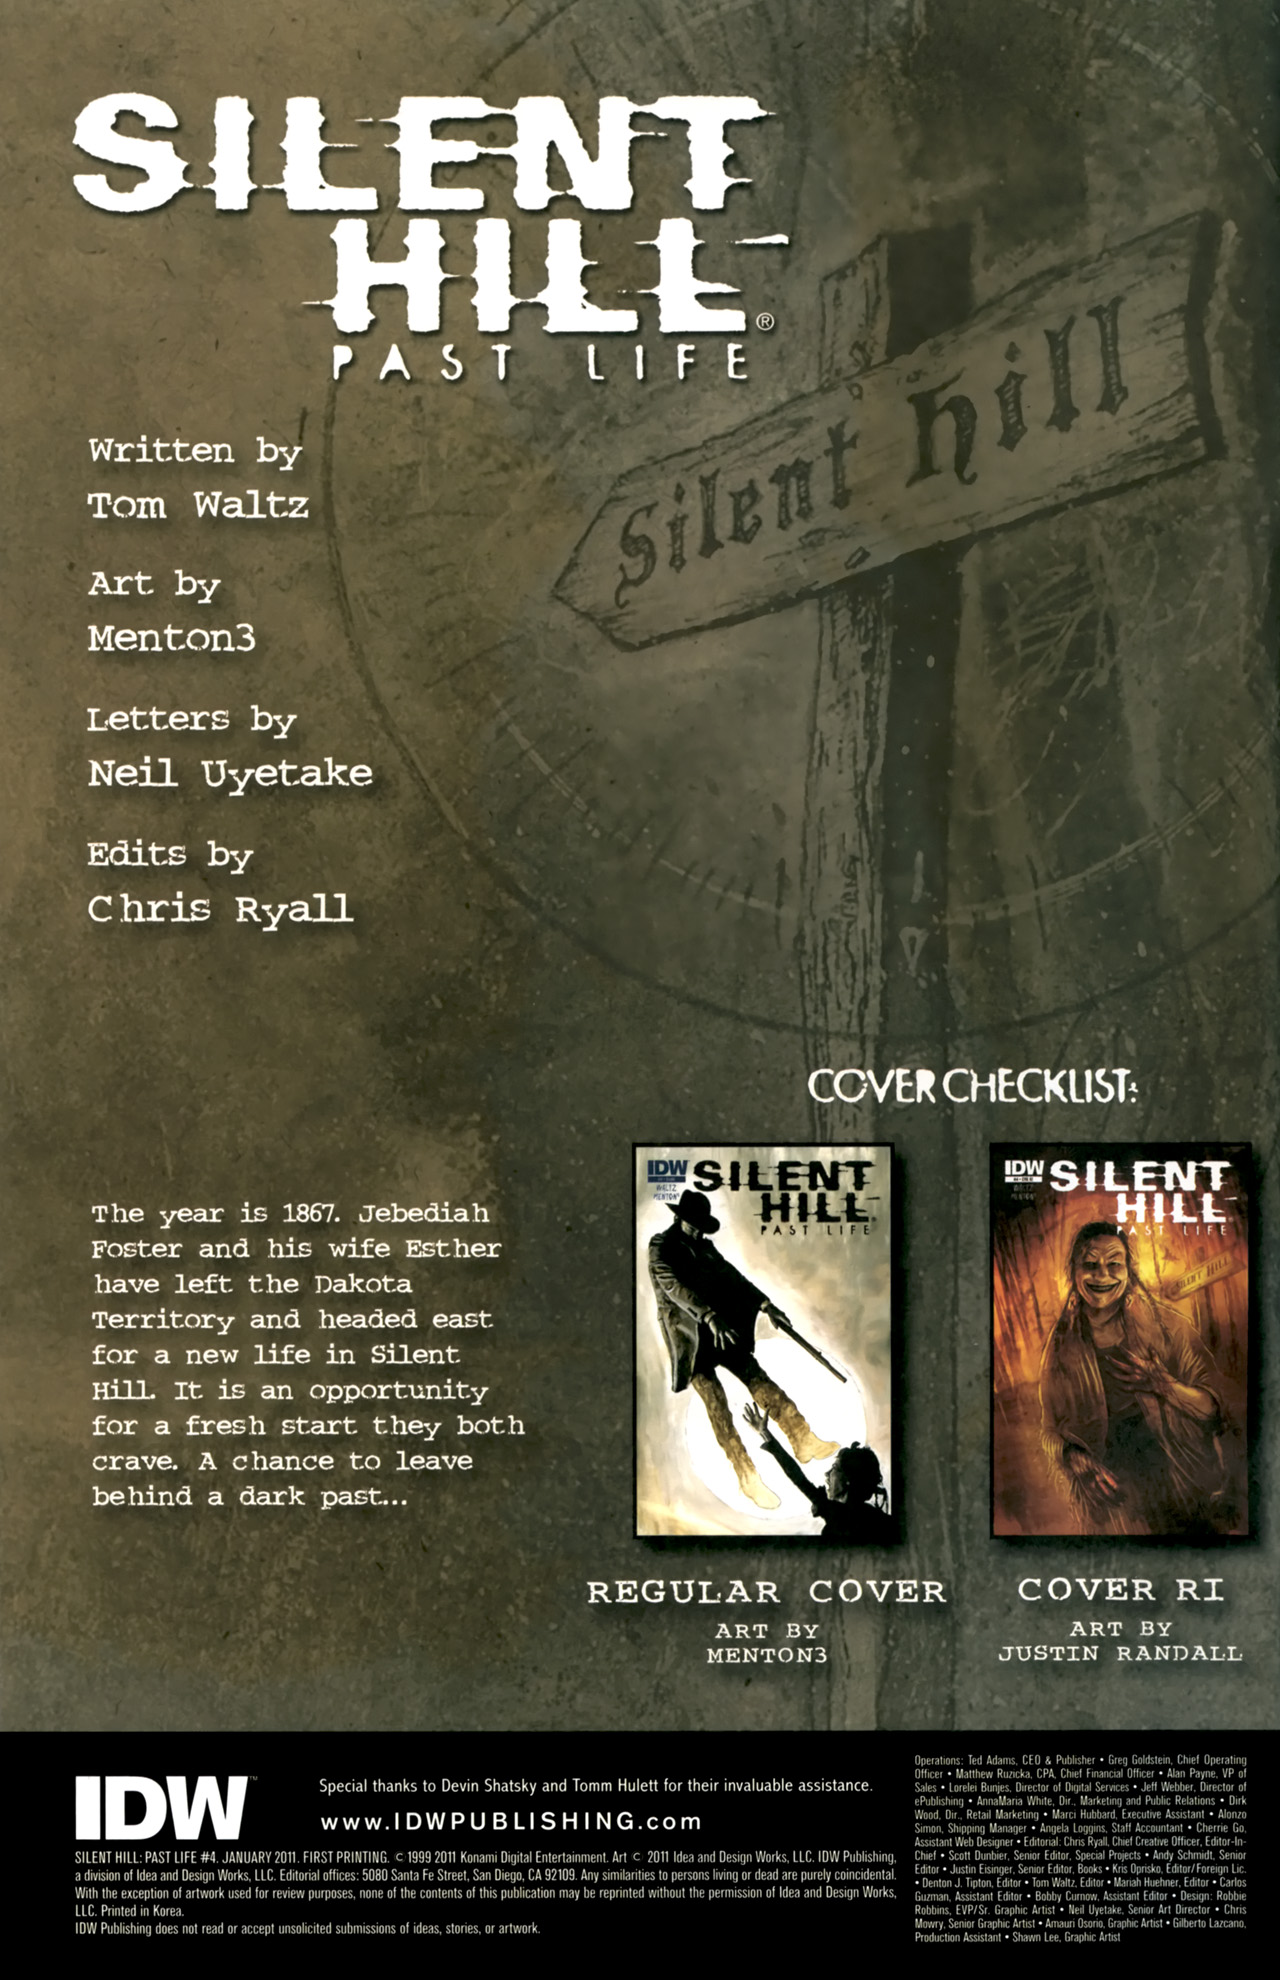 Read online Silent Hill: Past Life comic -  Issue #4 - 2